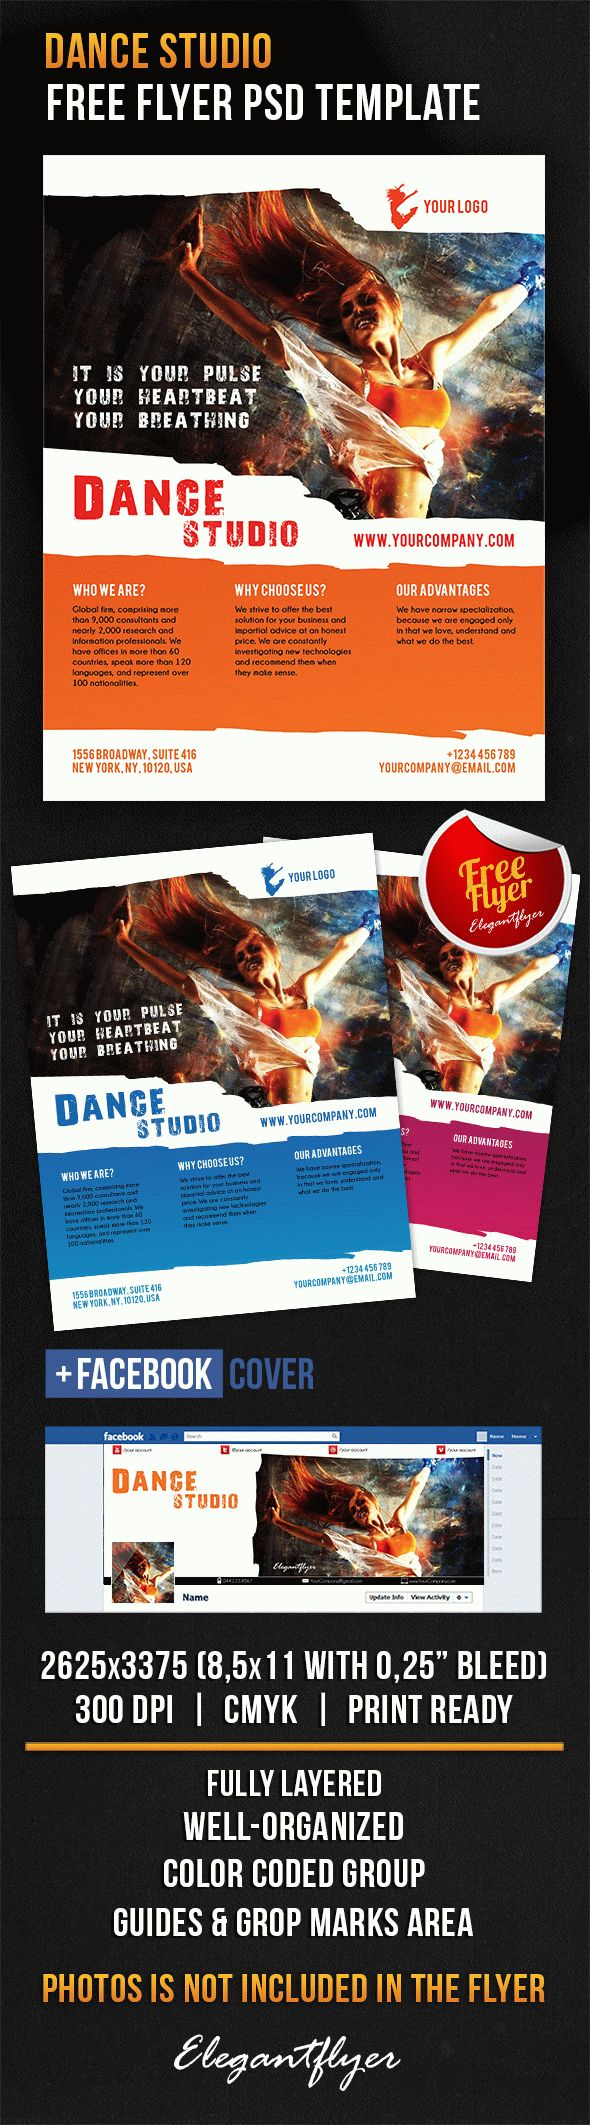 Dance Studio – Free Flyer PSD Template + Facebook Cover